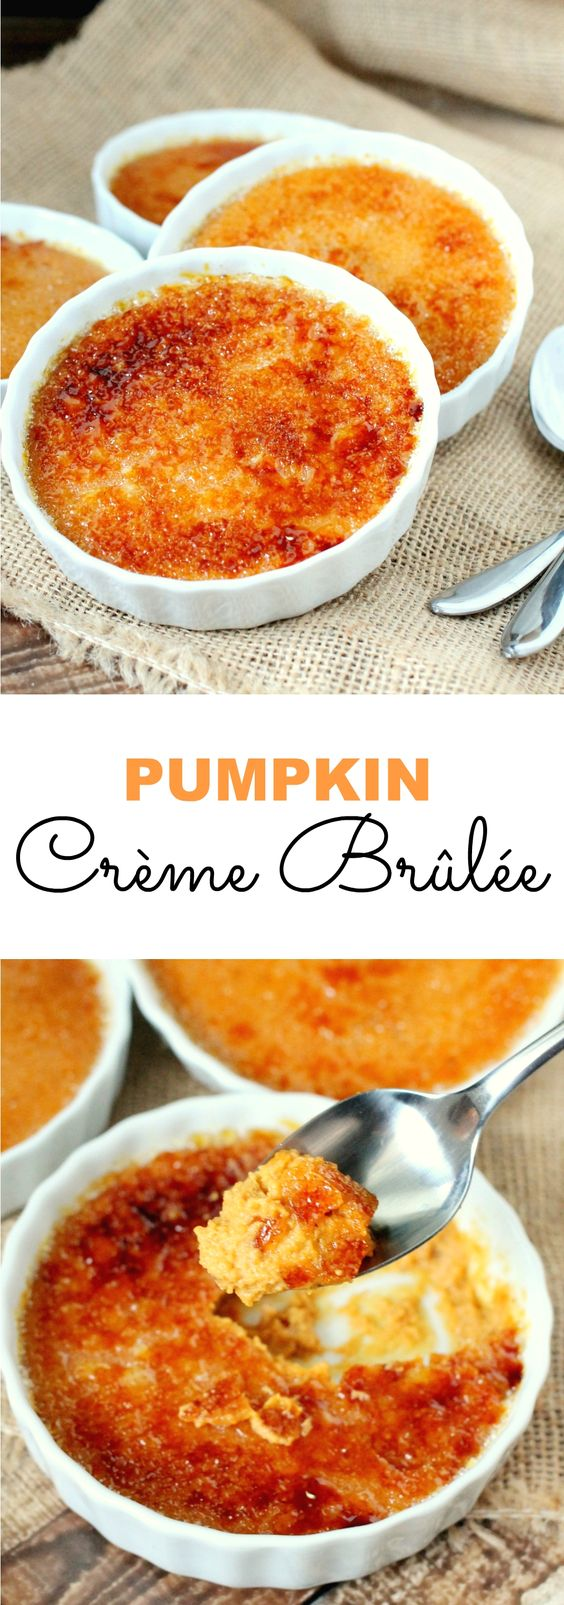 Pumpkin Spice Recipes: Pumpkin Creme Brulee